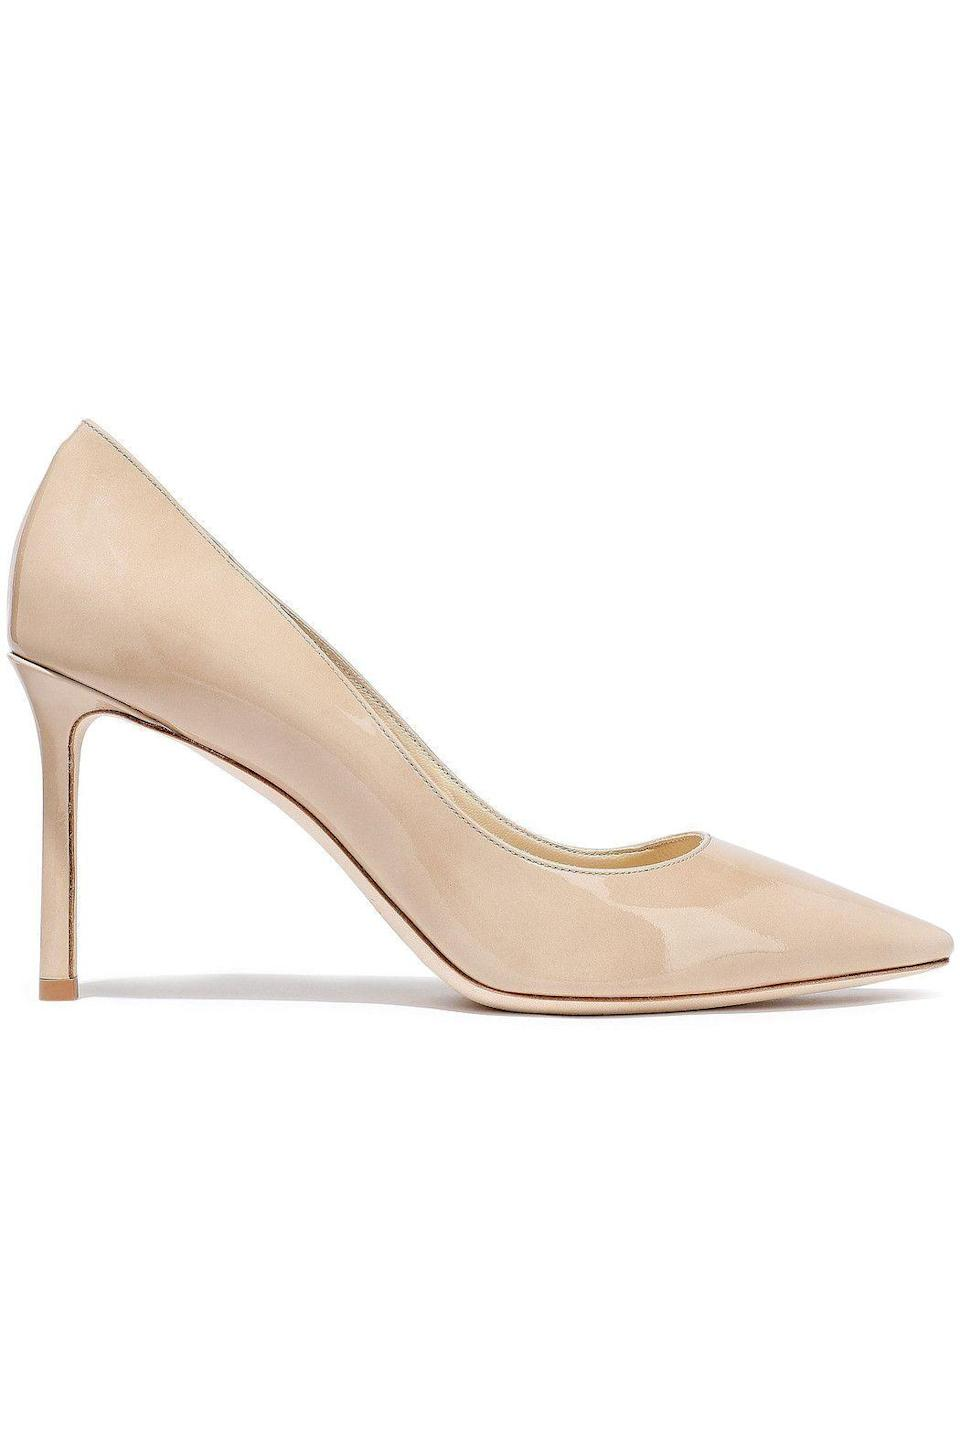 """<p><strong>JIMMY CHOO</strong></p><p>theoutnet.com</p><p><strong>$396.00</strong></p><p><a href=""""https://go.redirectingat.com?id=74968X1596630&url=https%3A%2F%2Fwww.theoutnet.com%2Fen-us%2Fshop%2Fproduct%2Fjimmy-choo%2Fpumps%2Fhigh-heel-pumps%2Fromy-85-patent-leather-pumps%2F666467151602264&sref=https%3A%2F%2Fwww.harpersbazaar.com%2Ffashion%2Ftrends%2Fg34788766%2Fthe-outnets-black-friday-sale-2020%2F"""" rel=""""nofollow noopener"""" target=""""_blank"""" data-ylk=""""slk:Shop Now"""" class=""""link rapid-noclick-resp"""">Shop Now</a></p><p>A pair of nude pumps belongs in everyone's closet. </p>"""